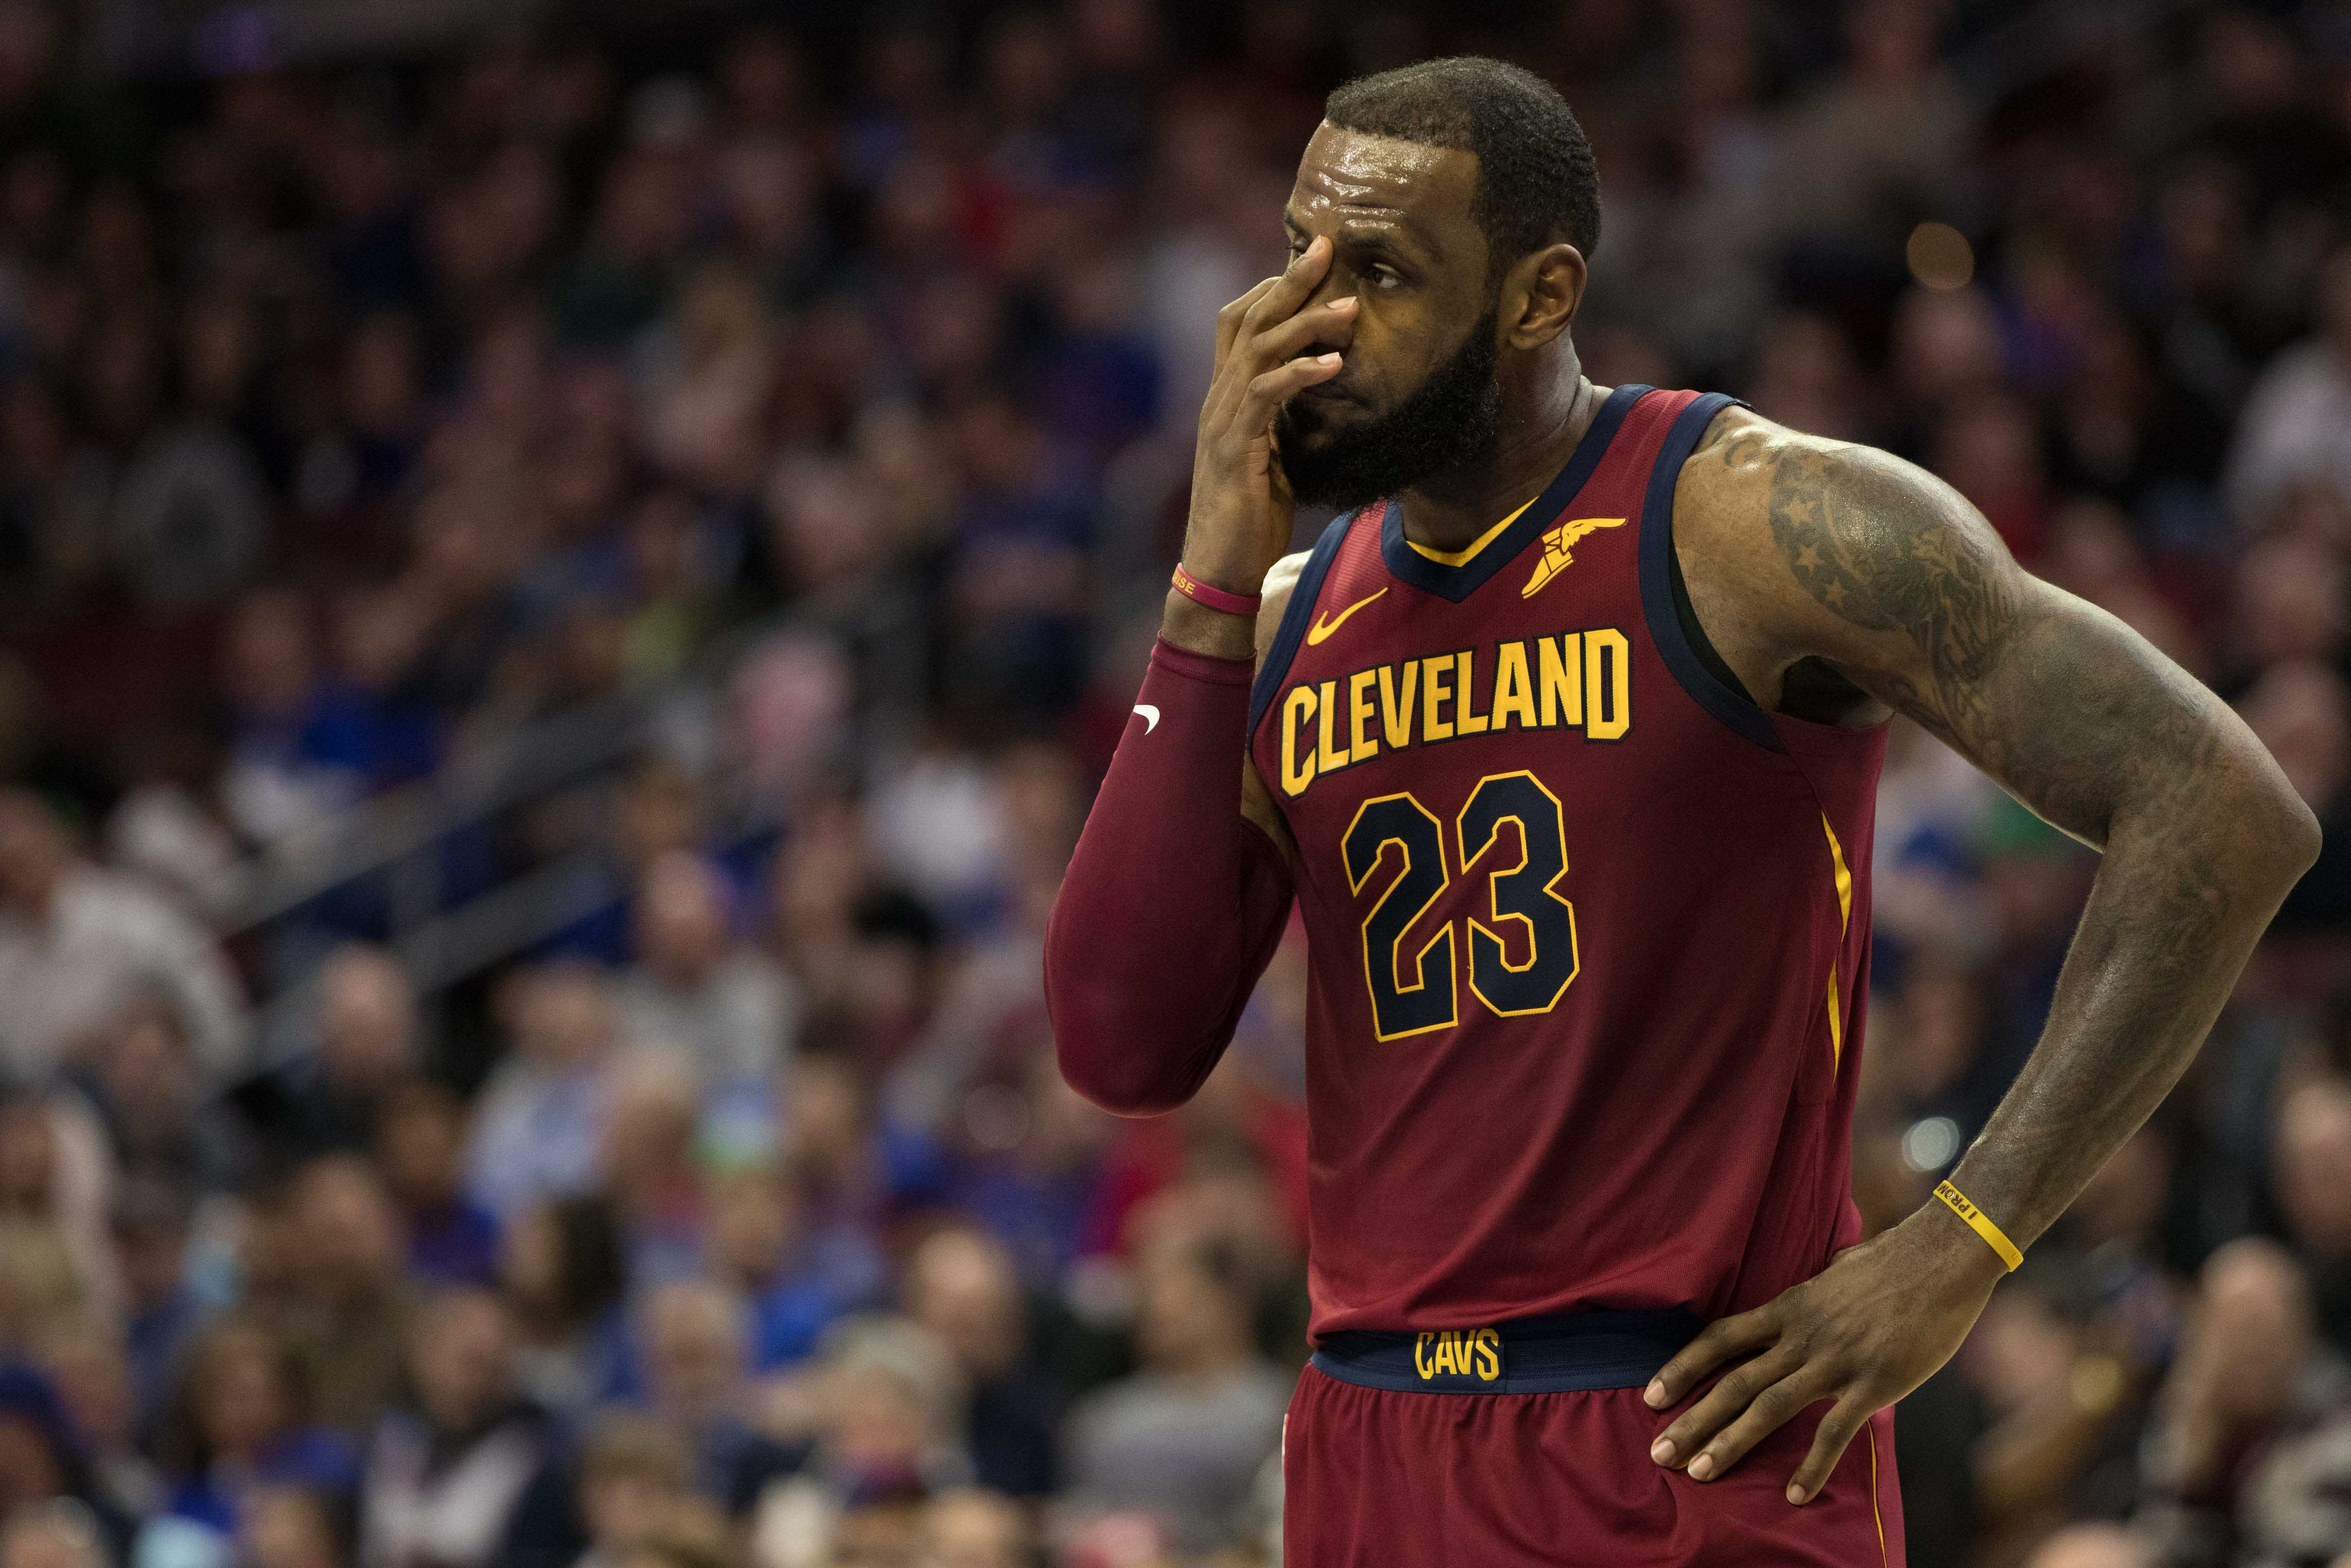 b0b7050cd5c2 LeBron James got emotional when TNT broke the news of Erin Popovich s  passing to him.